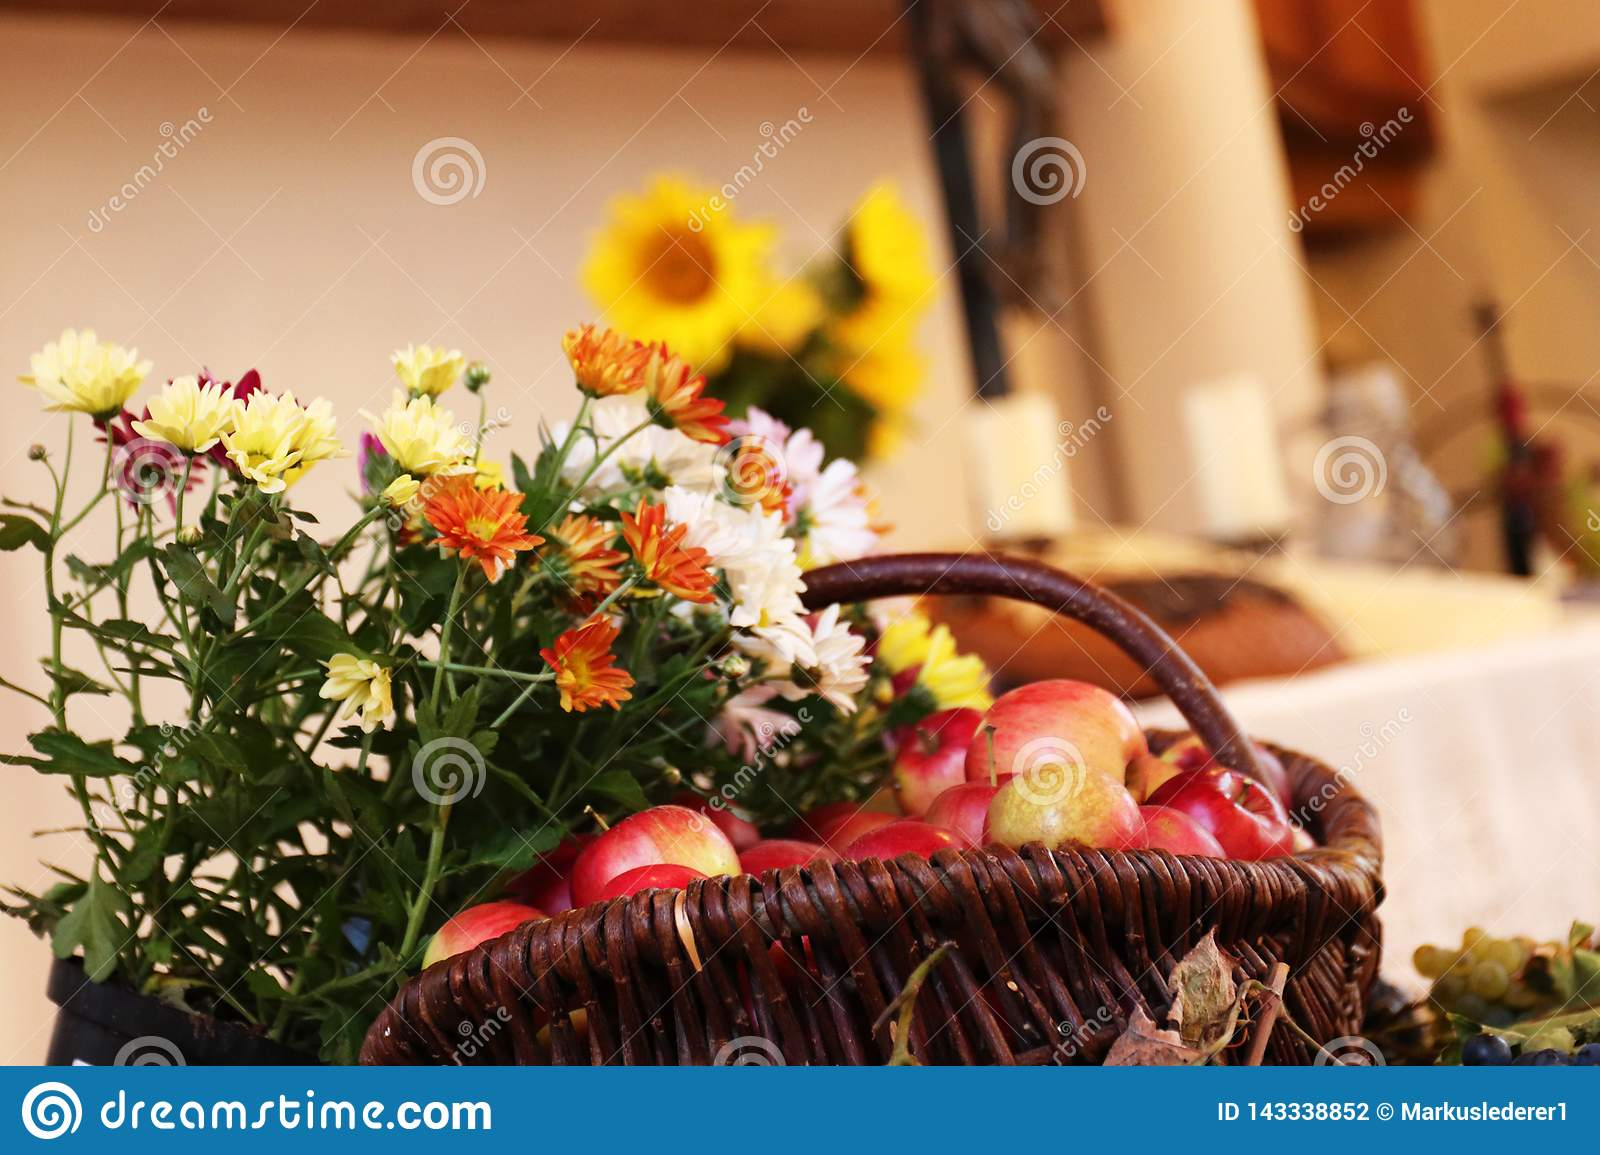 Thanksgiving: Fruits and flowers in front of an altar